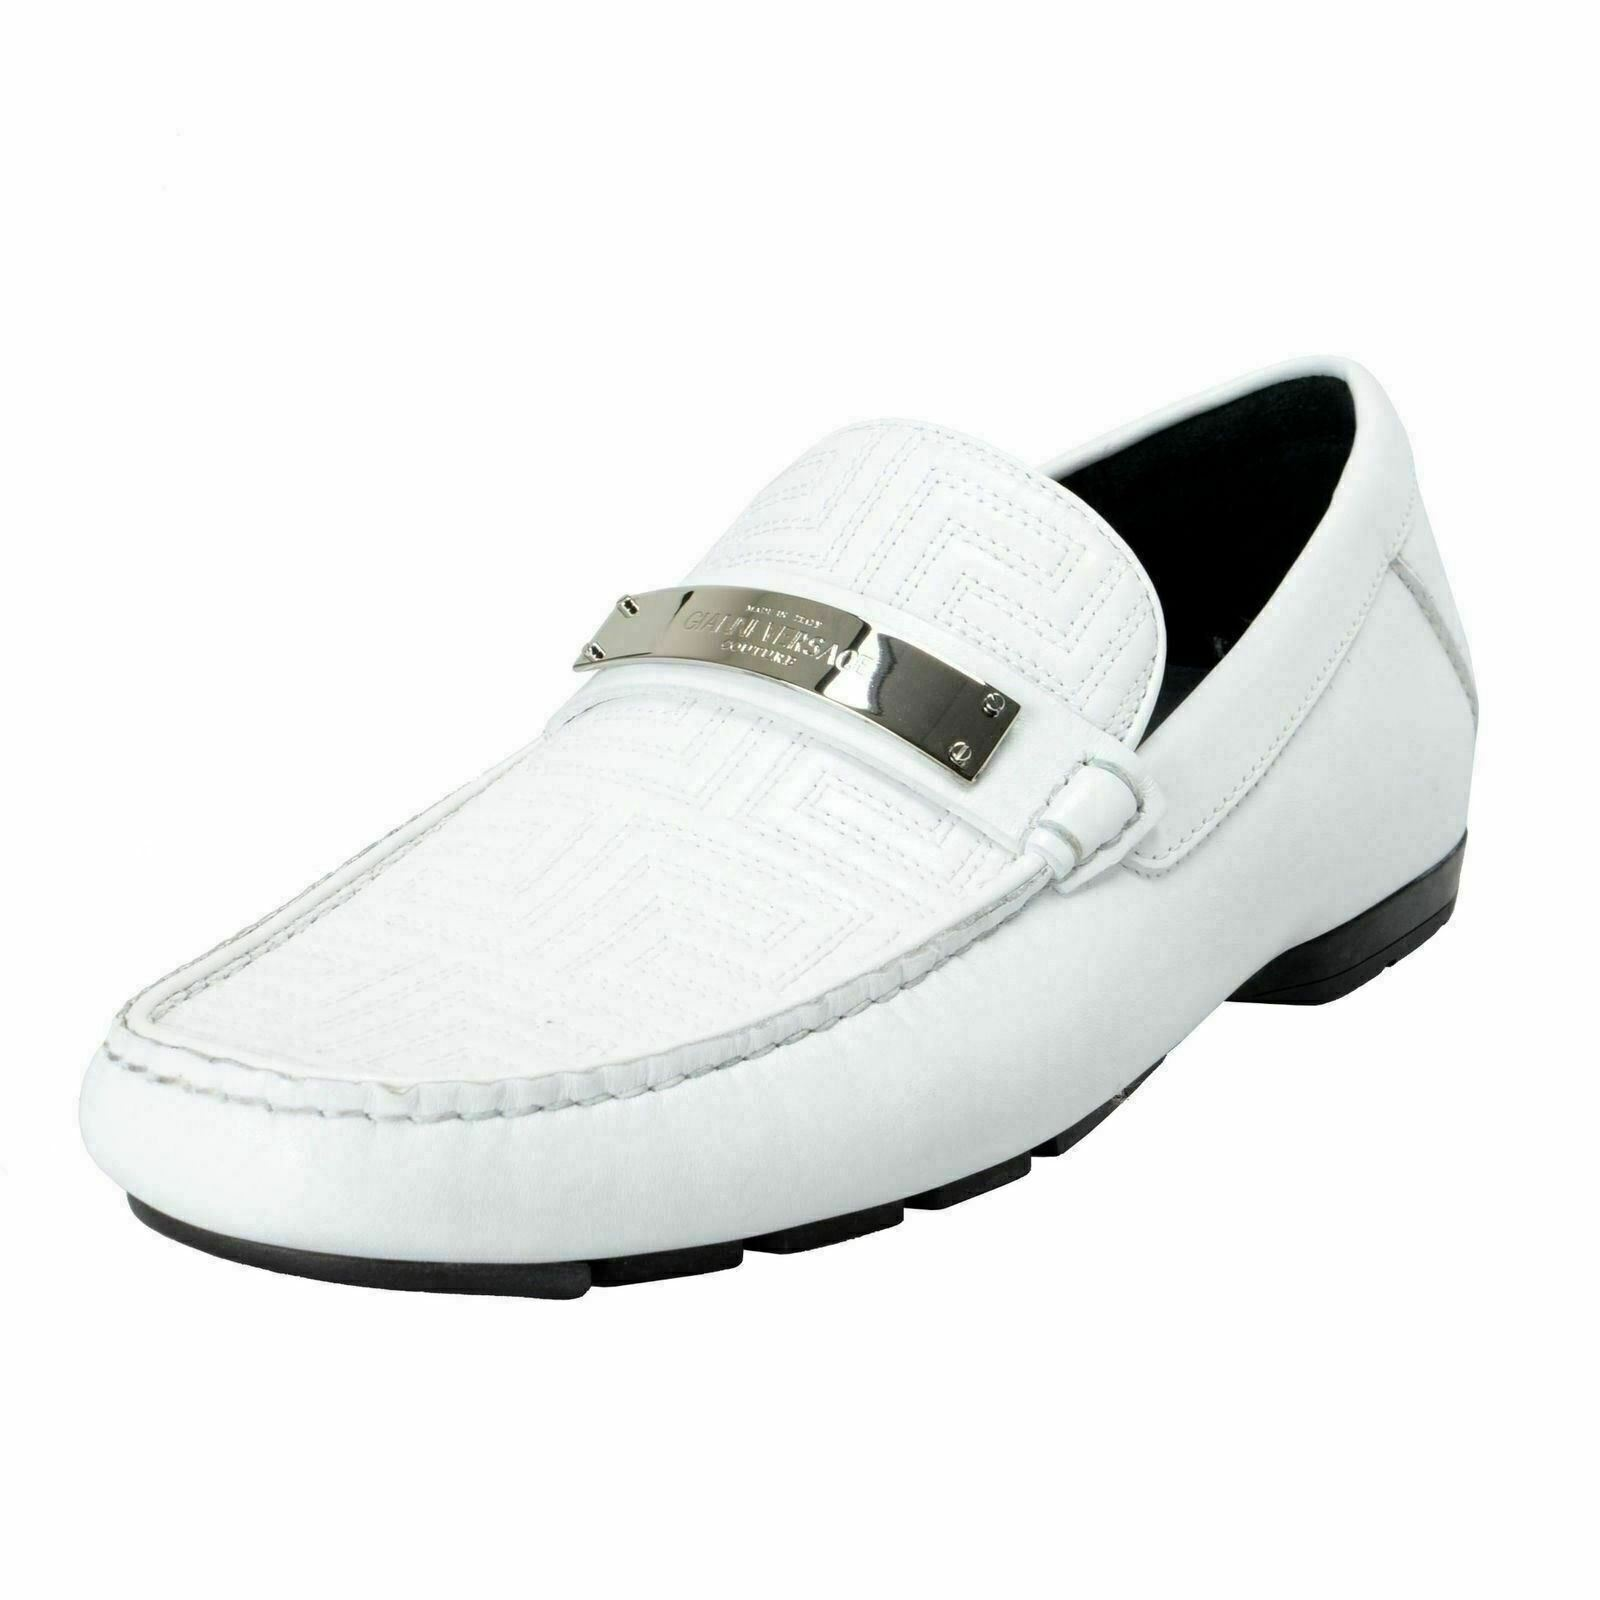 Gianni Versace Homme Blanc Mocassins Chaussures à Enfiler Us 6.5 It 39.5